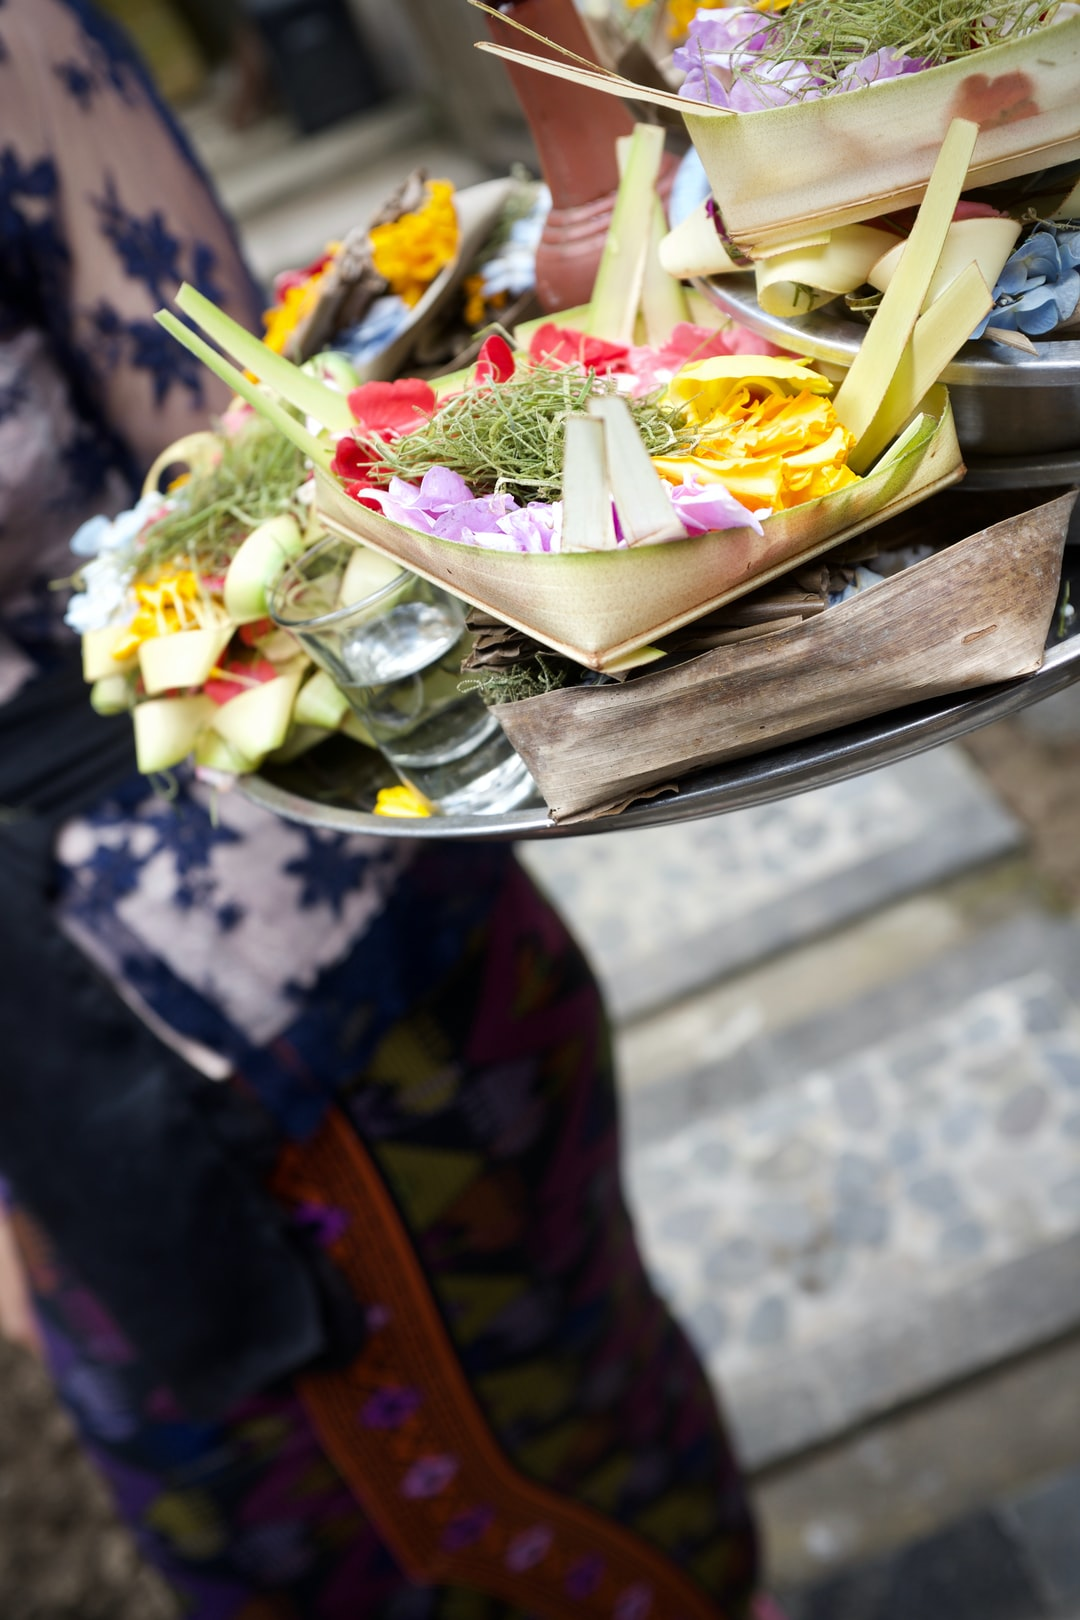 I was searching on Unsplash for frangipani/plumeria. I noticed only a handful of images. So, I plan to donate some of my photos of canang sari offerings starting with this special one.